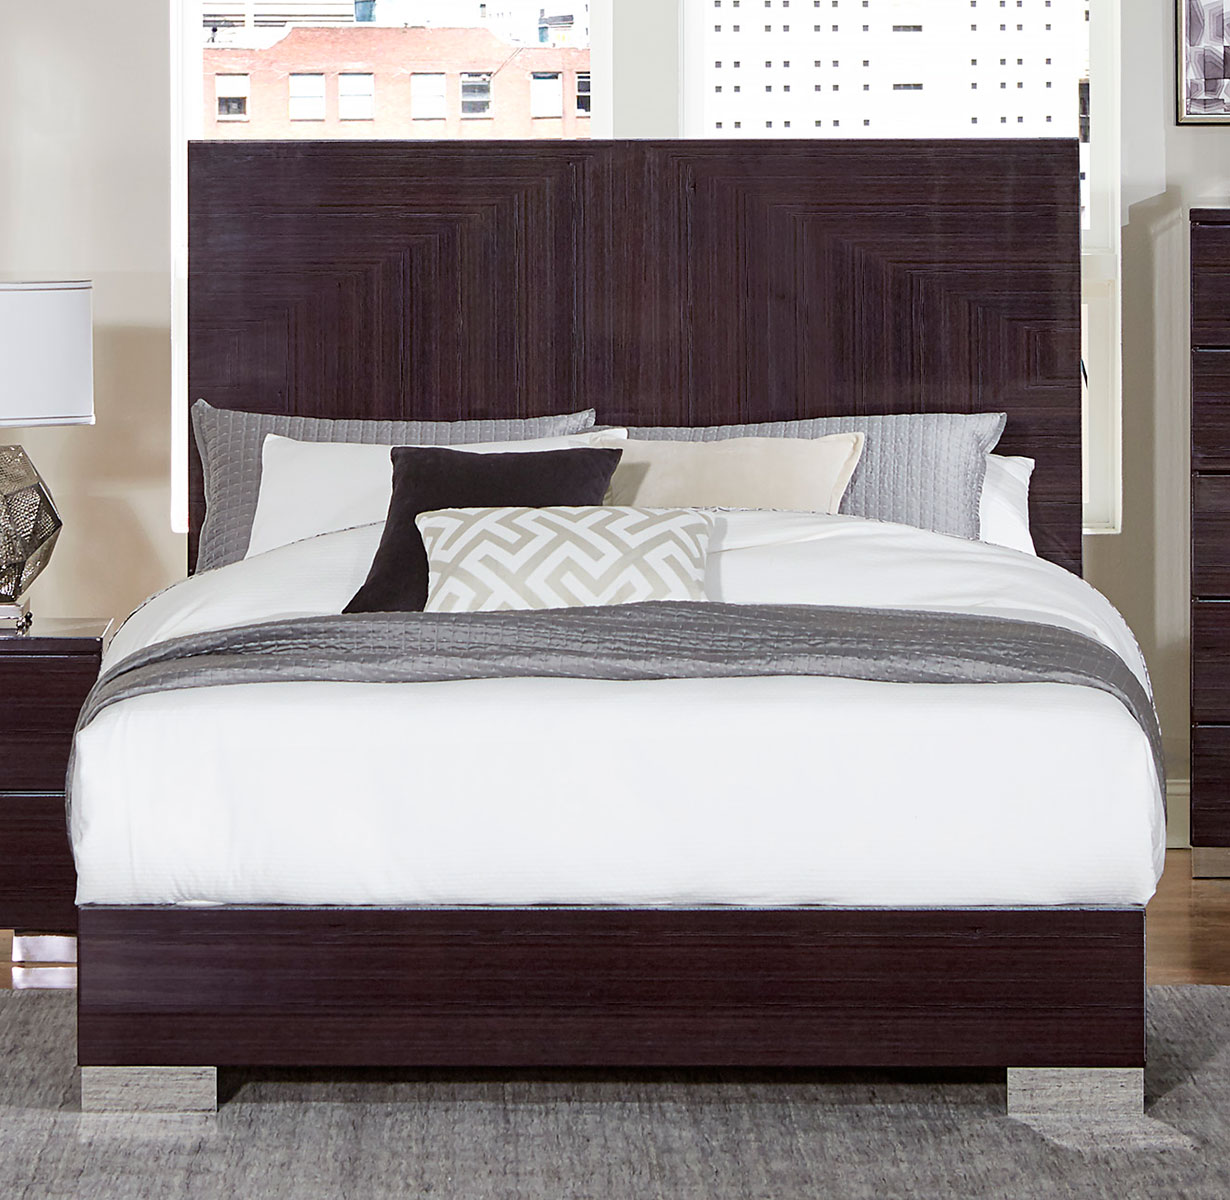 Homelegance Moritz Bed - High Gloss